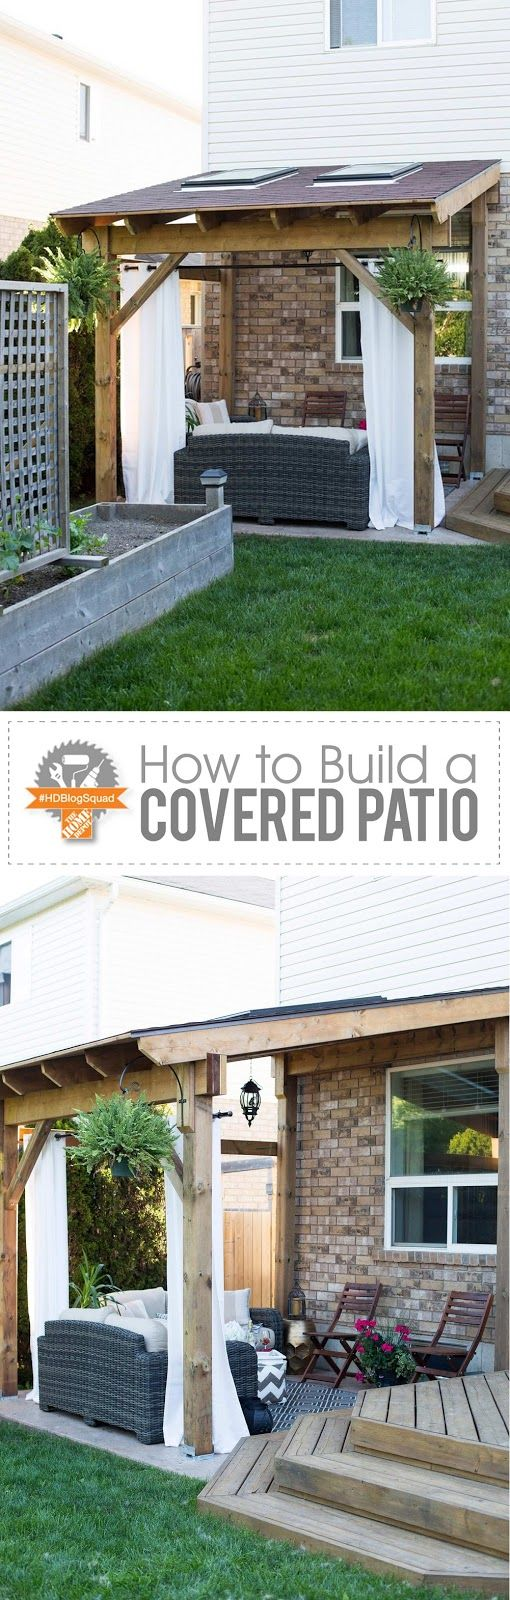 Small backyard covered patio ideas - Small Backyard Patio Hdblogsquad How To Build A Covered Patio Via My Daily